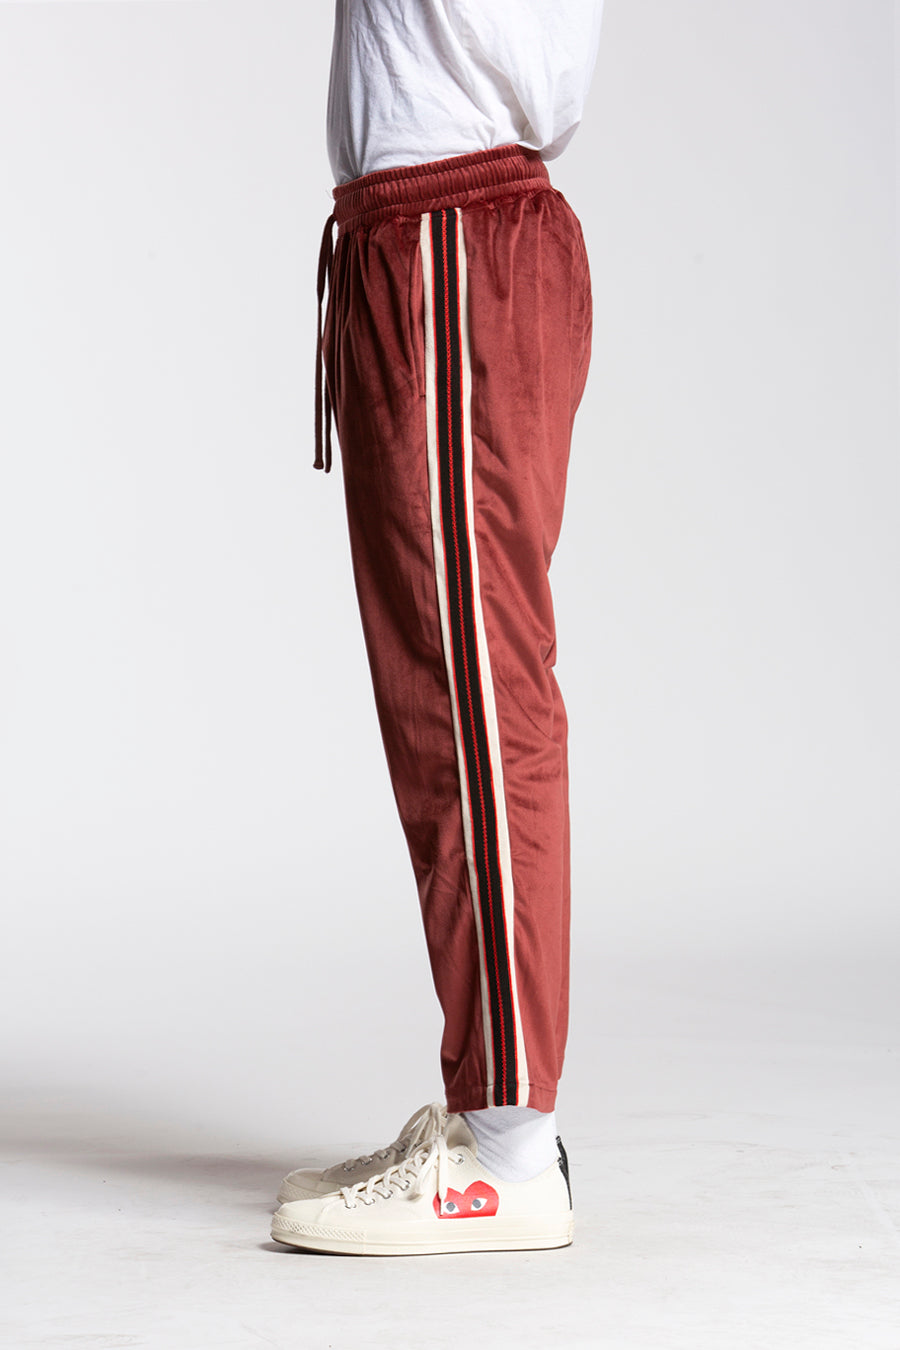 candorofficial - Track Pant, Maroon - Bottoms